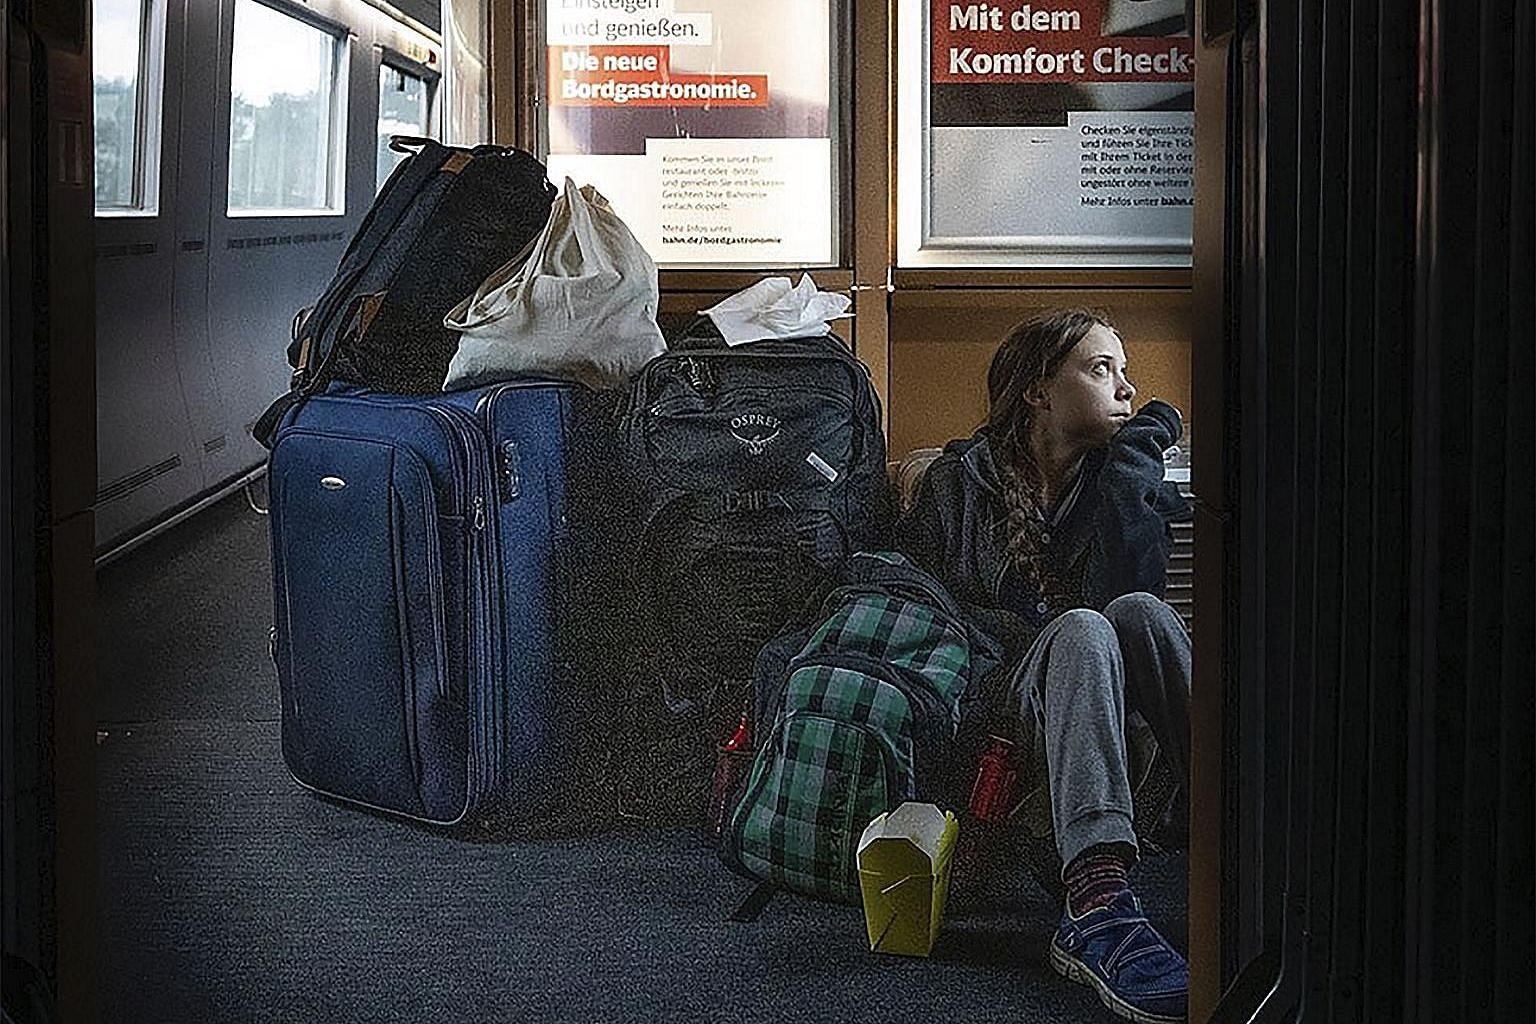 Climate activist Greta Thunberg tweeted a photo of herself sitting on the floor of a Deutsche Bahn train last Saturday, leading to an online tweetstorm about the performance of German railways.